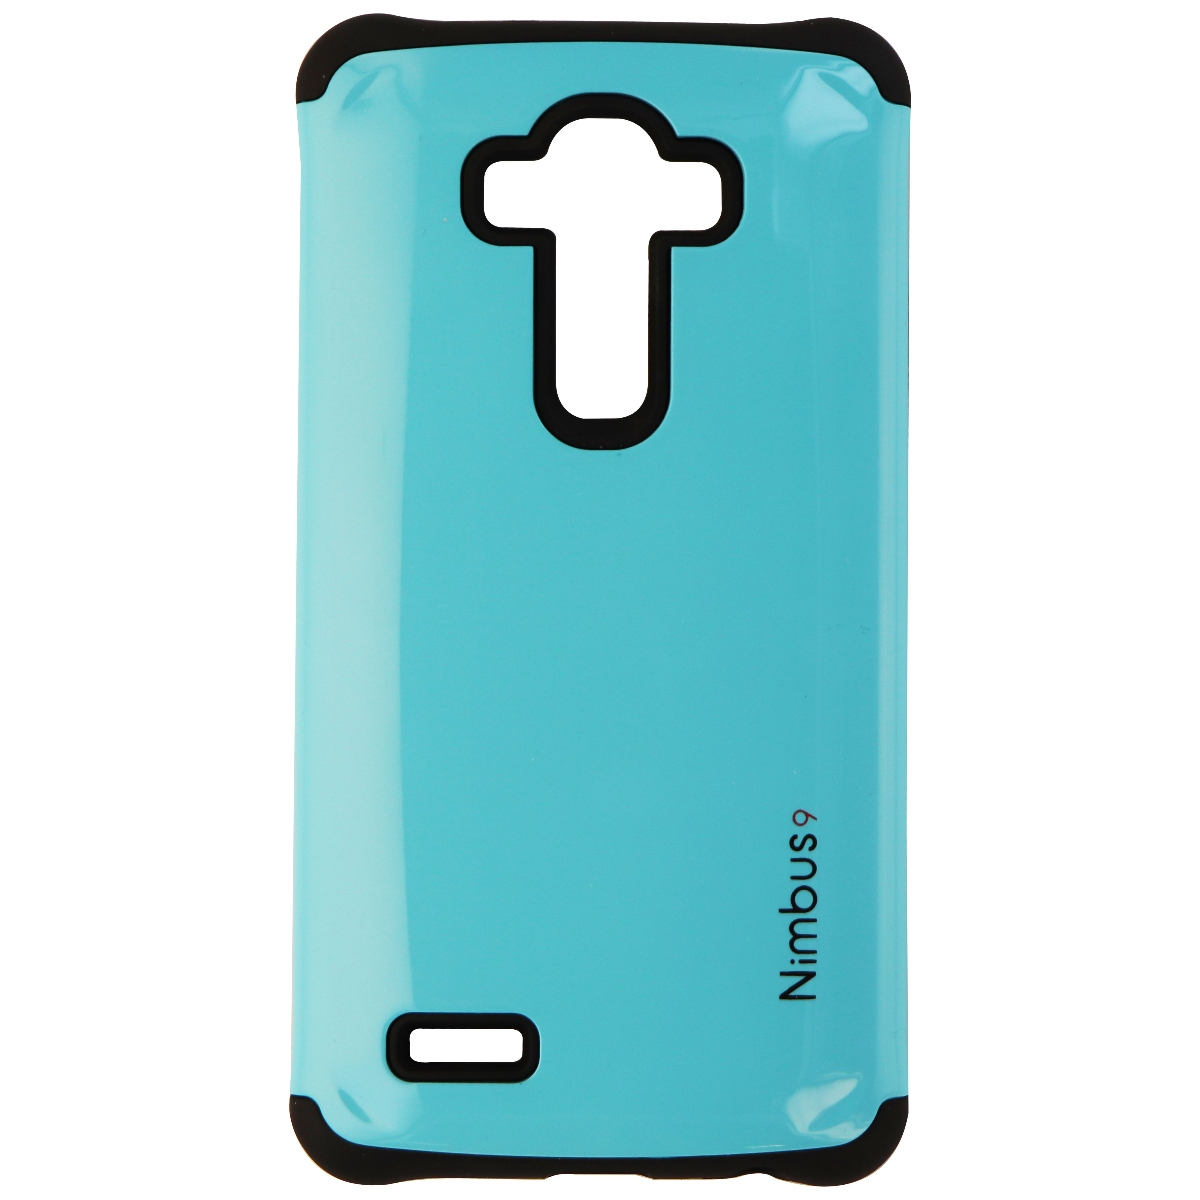 Nimbus9 Capsule Series Dual Layer Hard Case Cover for LG G4 - Light Blue / Black